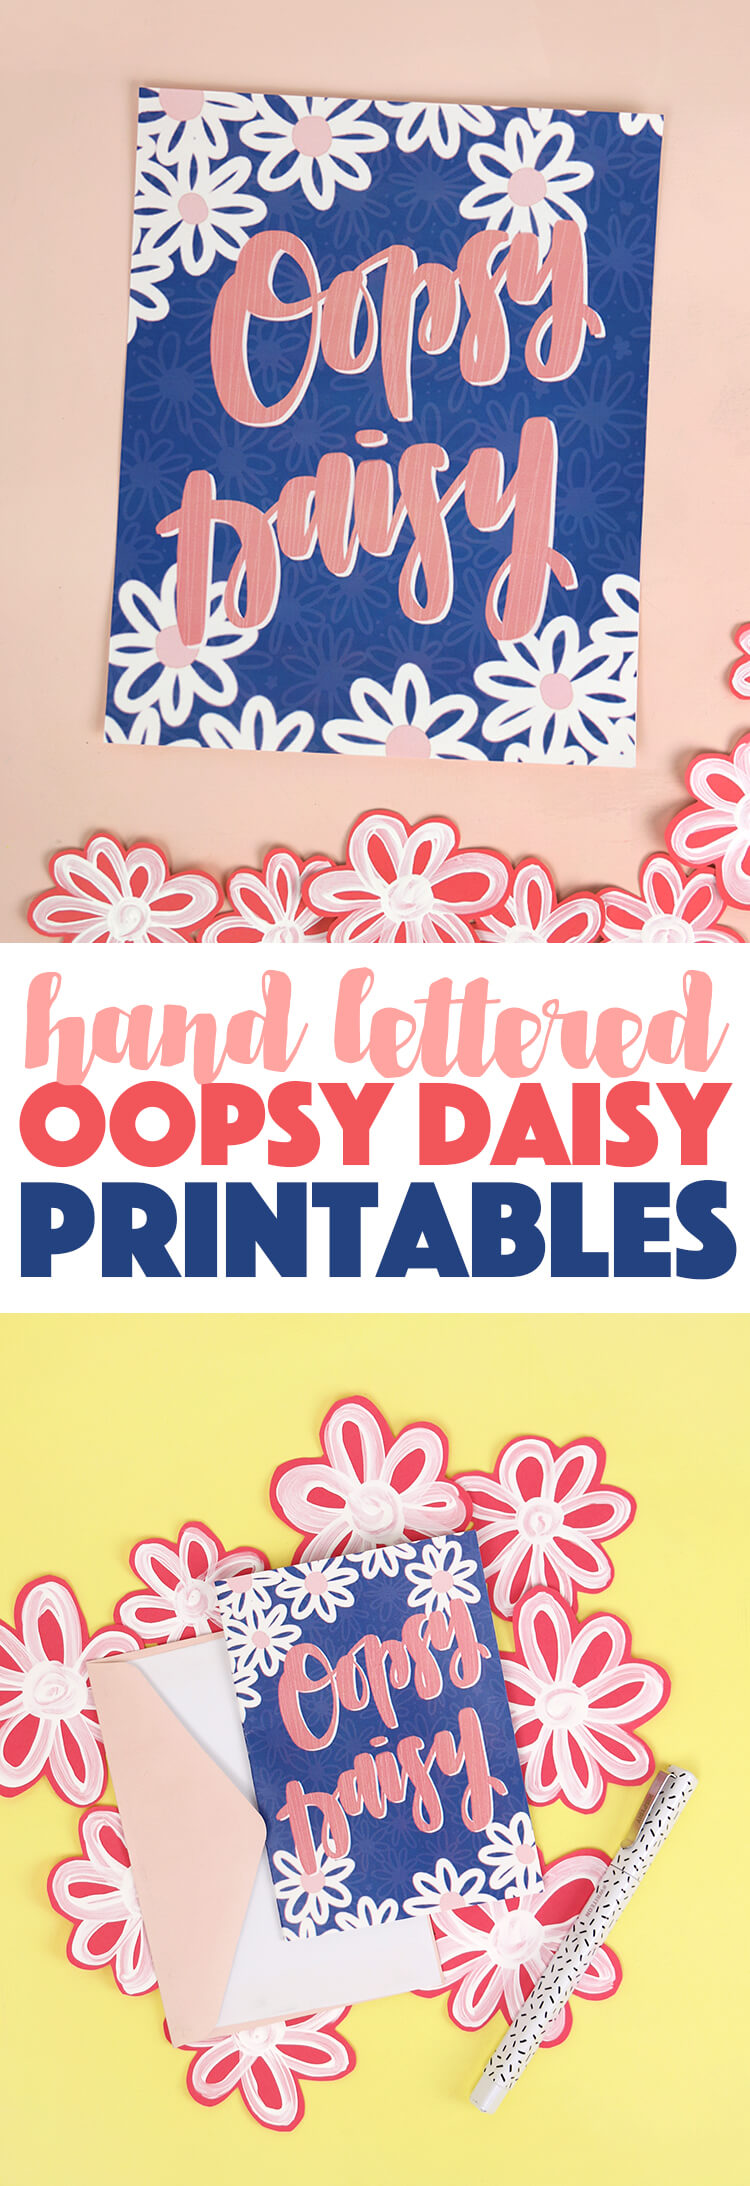 """free hand lettered """"oopsy daisy"""" printable for Spring"""